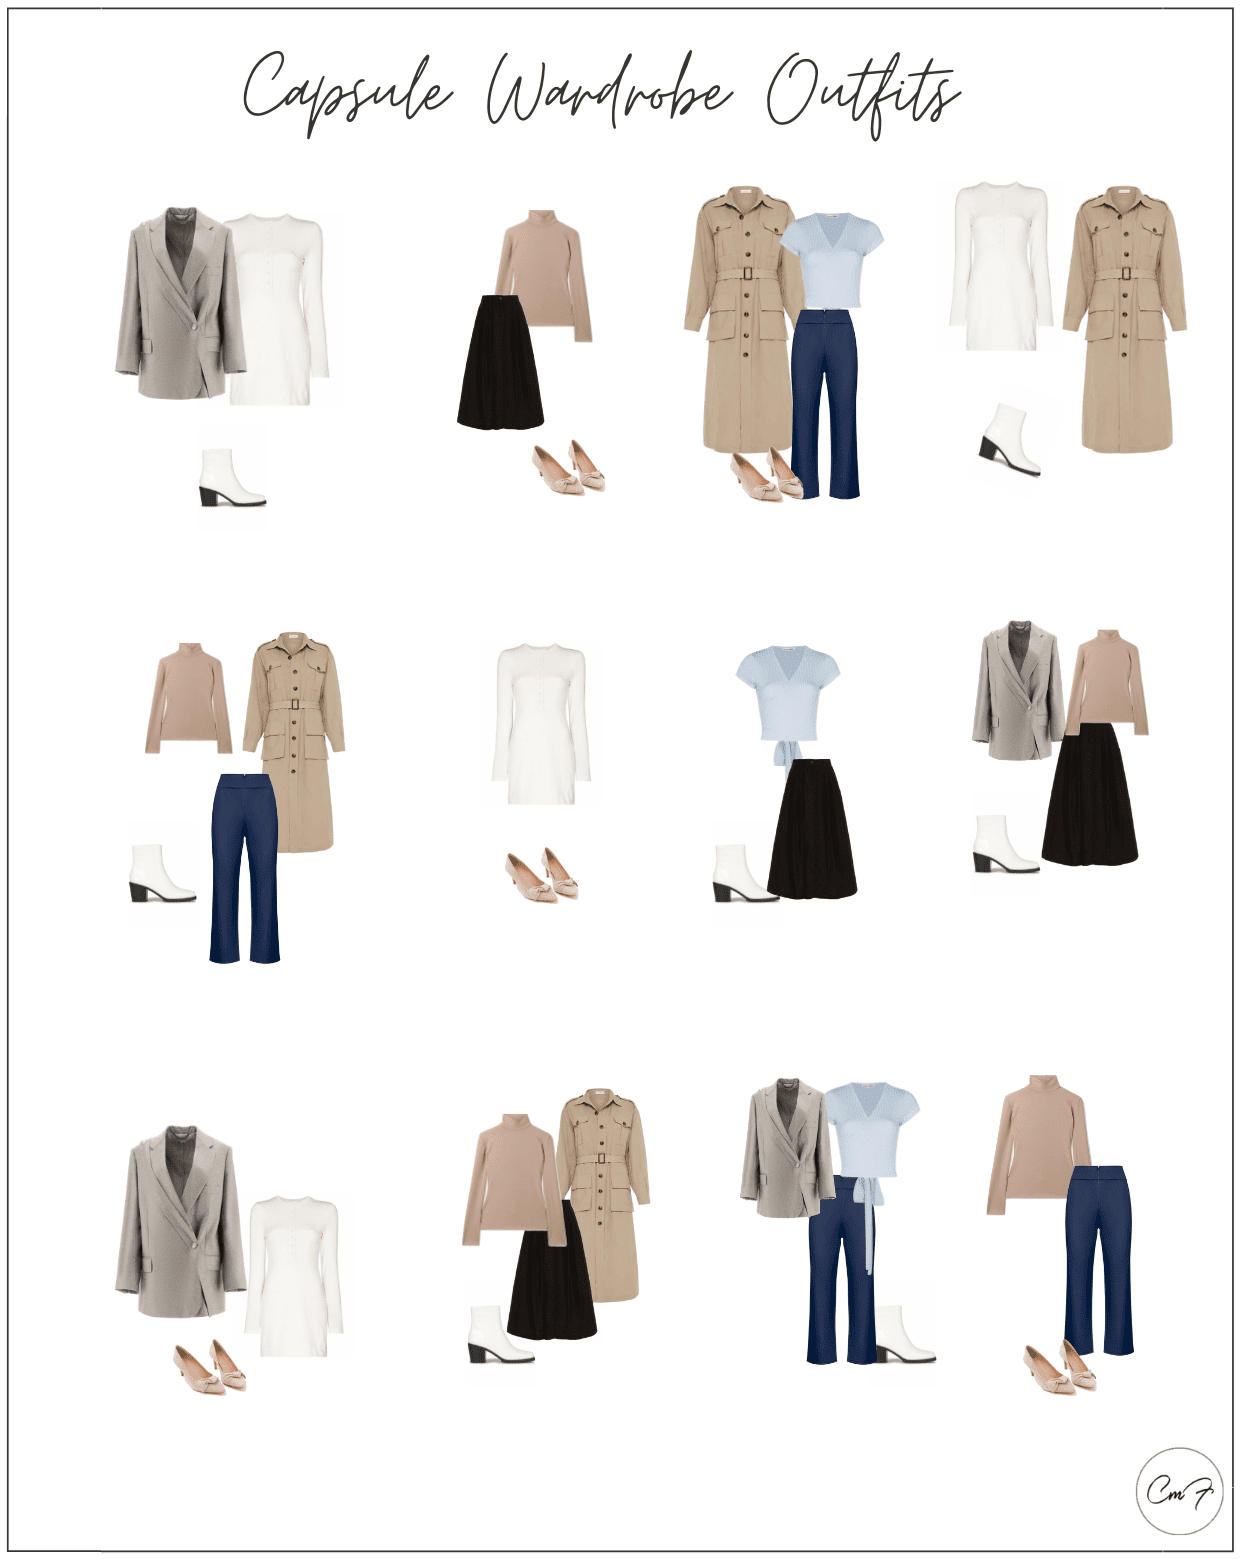 outfits with a capsule wardrobe